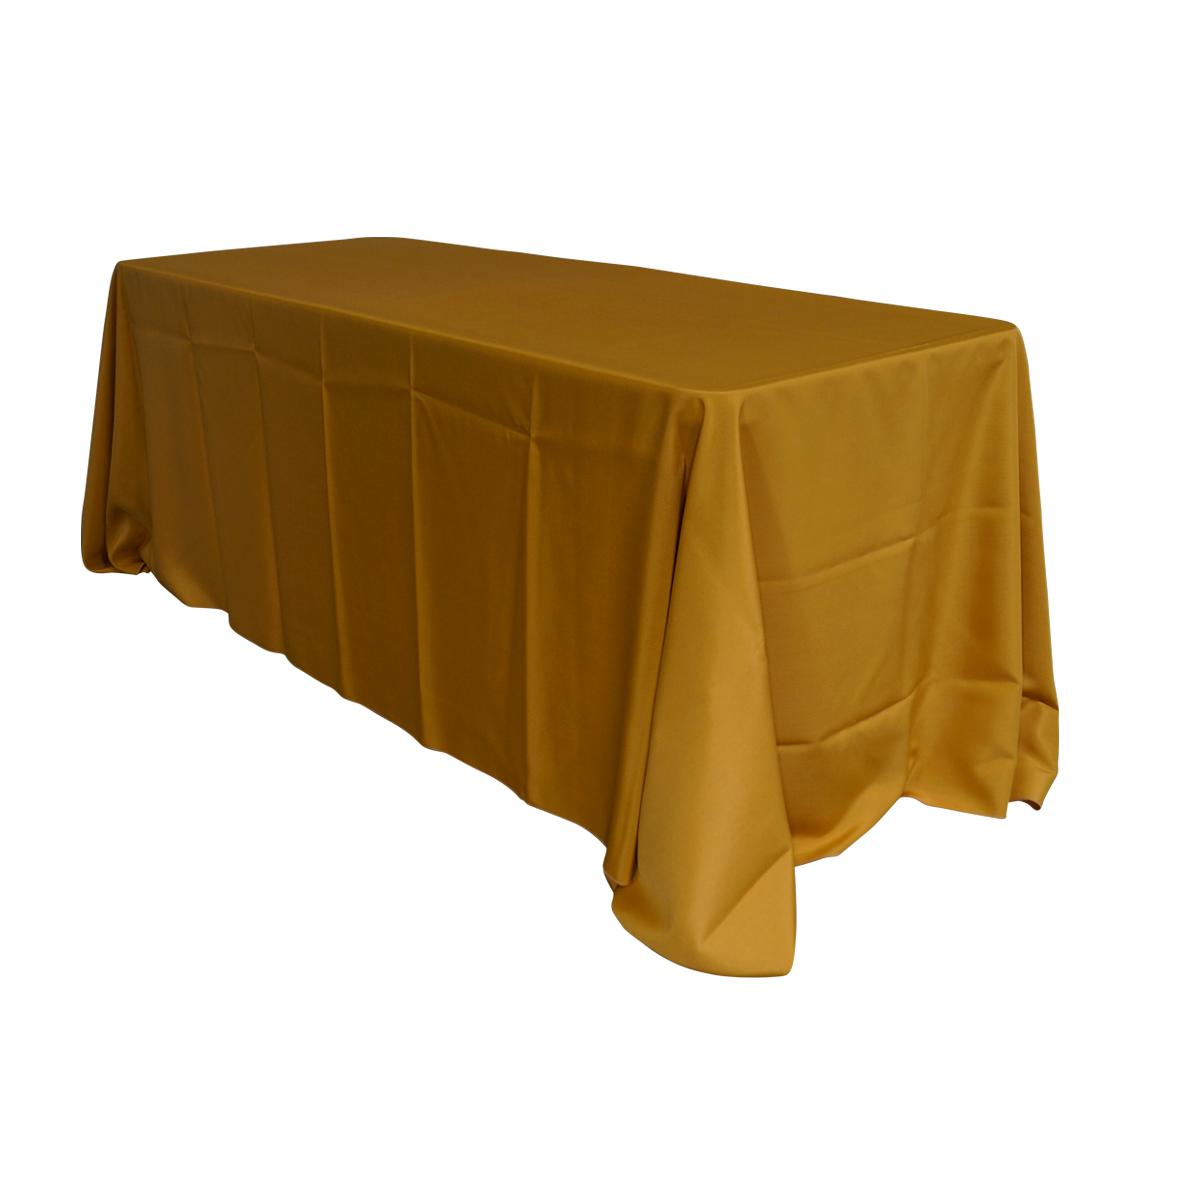 "Economy Polyester Poplin 90""x156"" Rectangular Tablecloth - Gold"